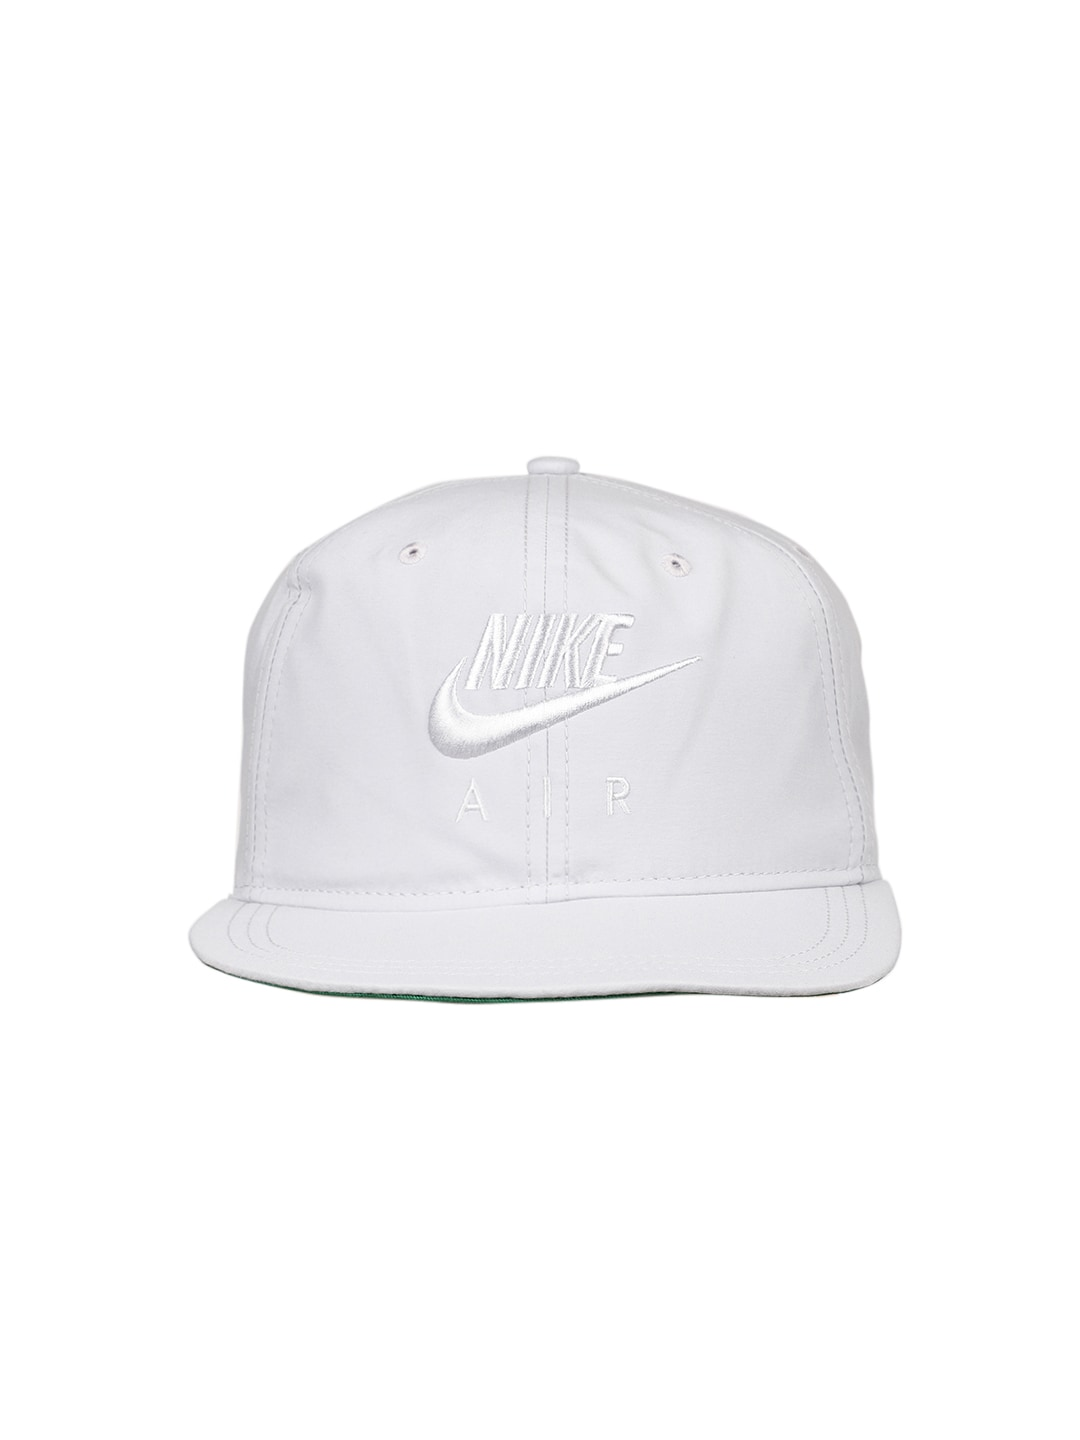 133bf797d70dd Nike Cr7 Caps - Buy Nike Cr7 Caps online in India